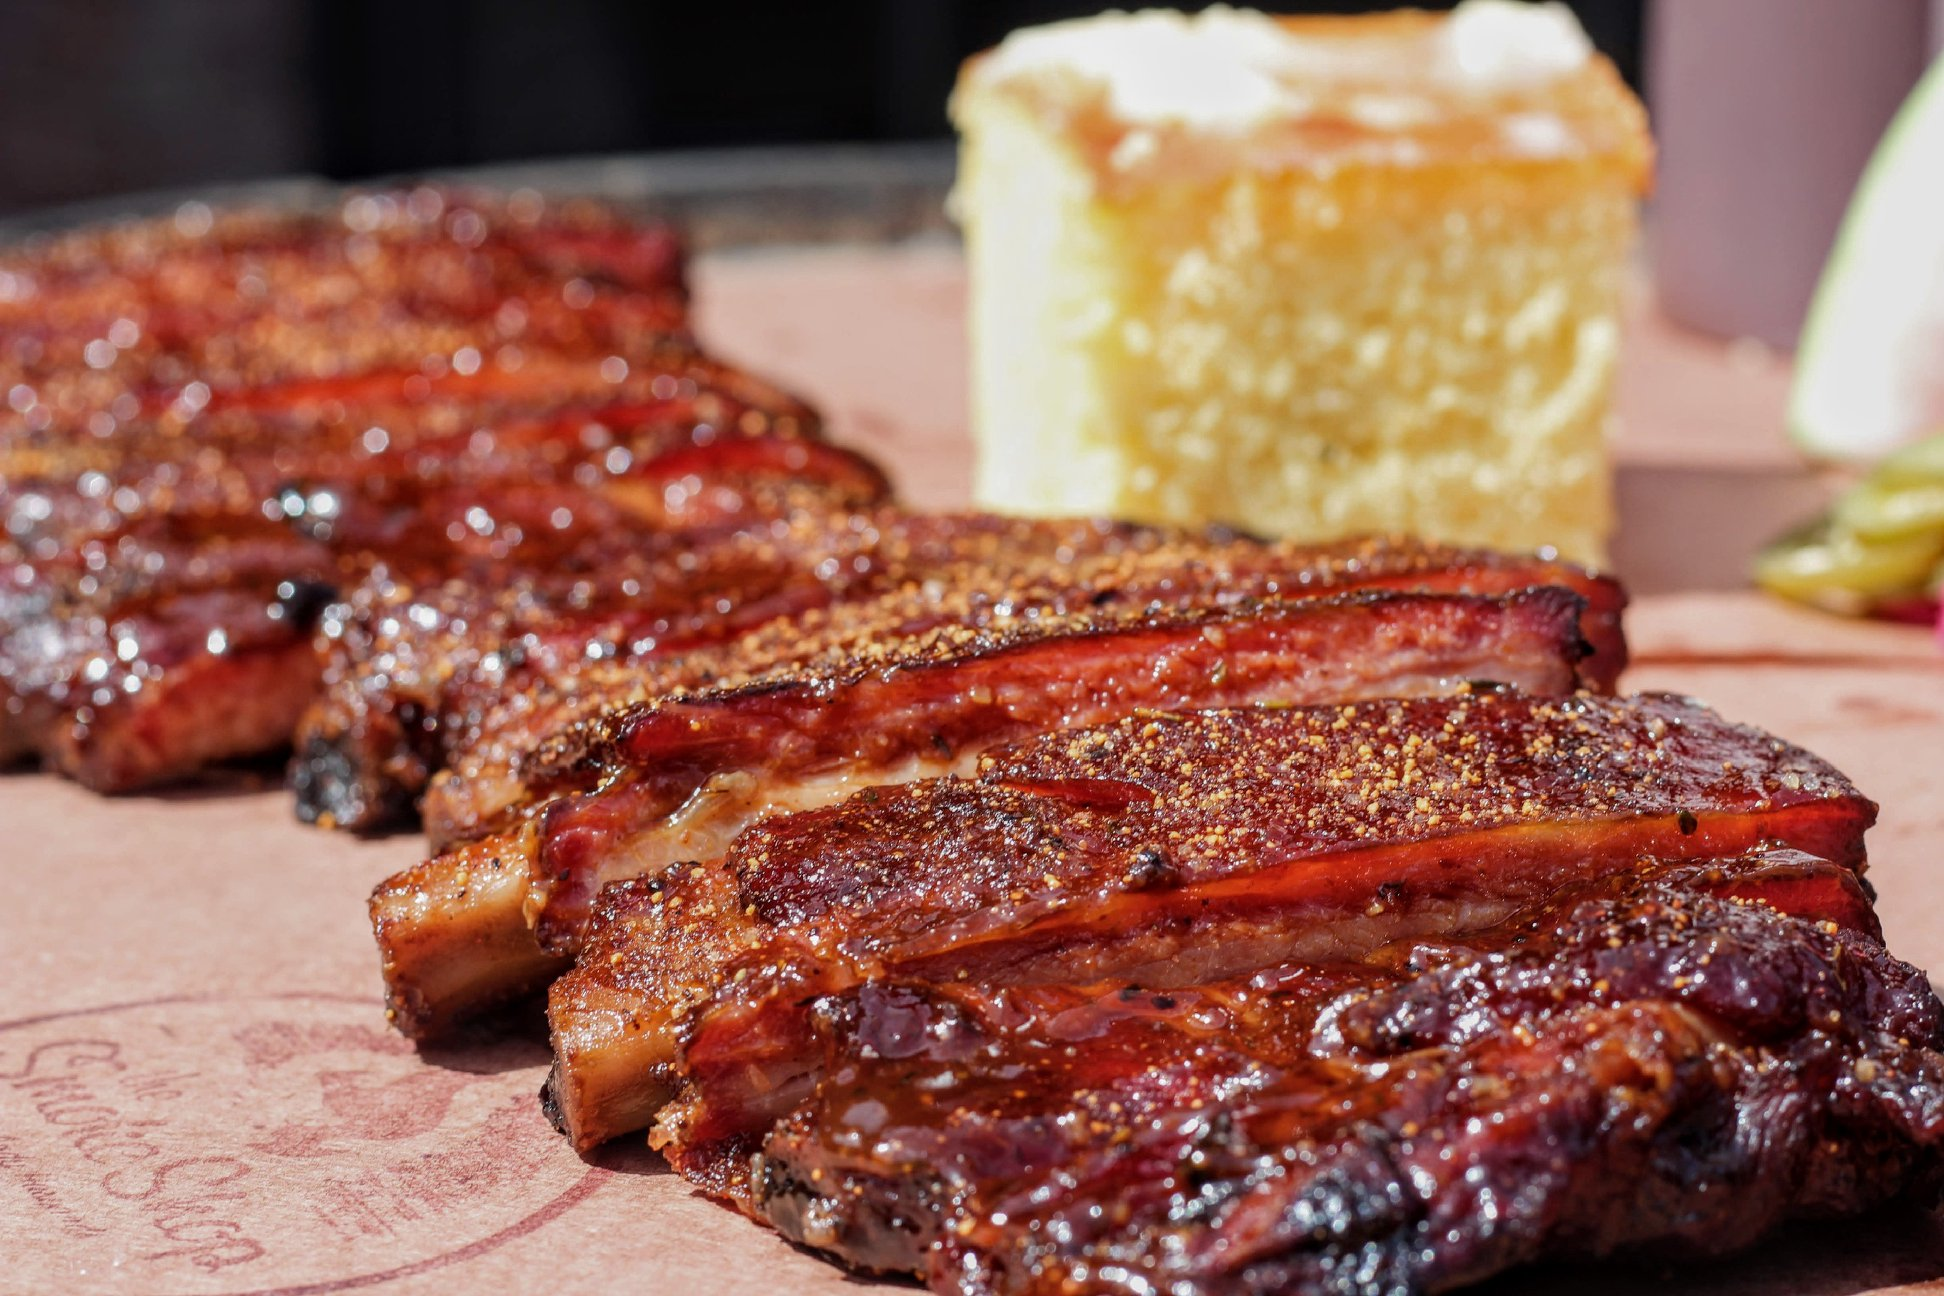 Ribs from the Smoke Shop